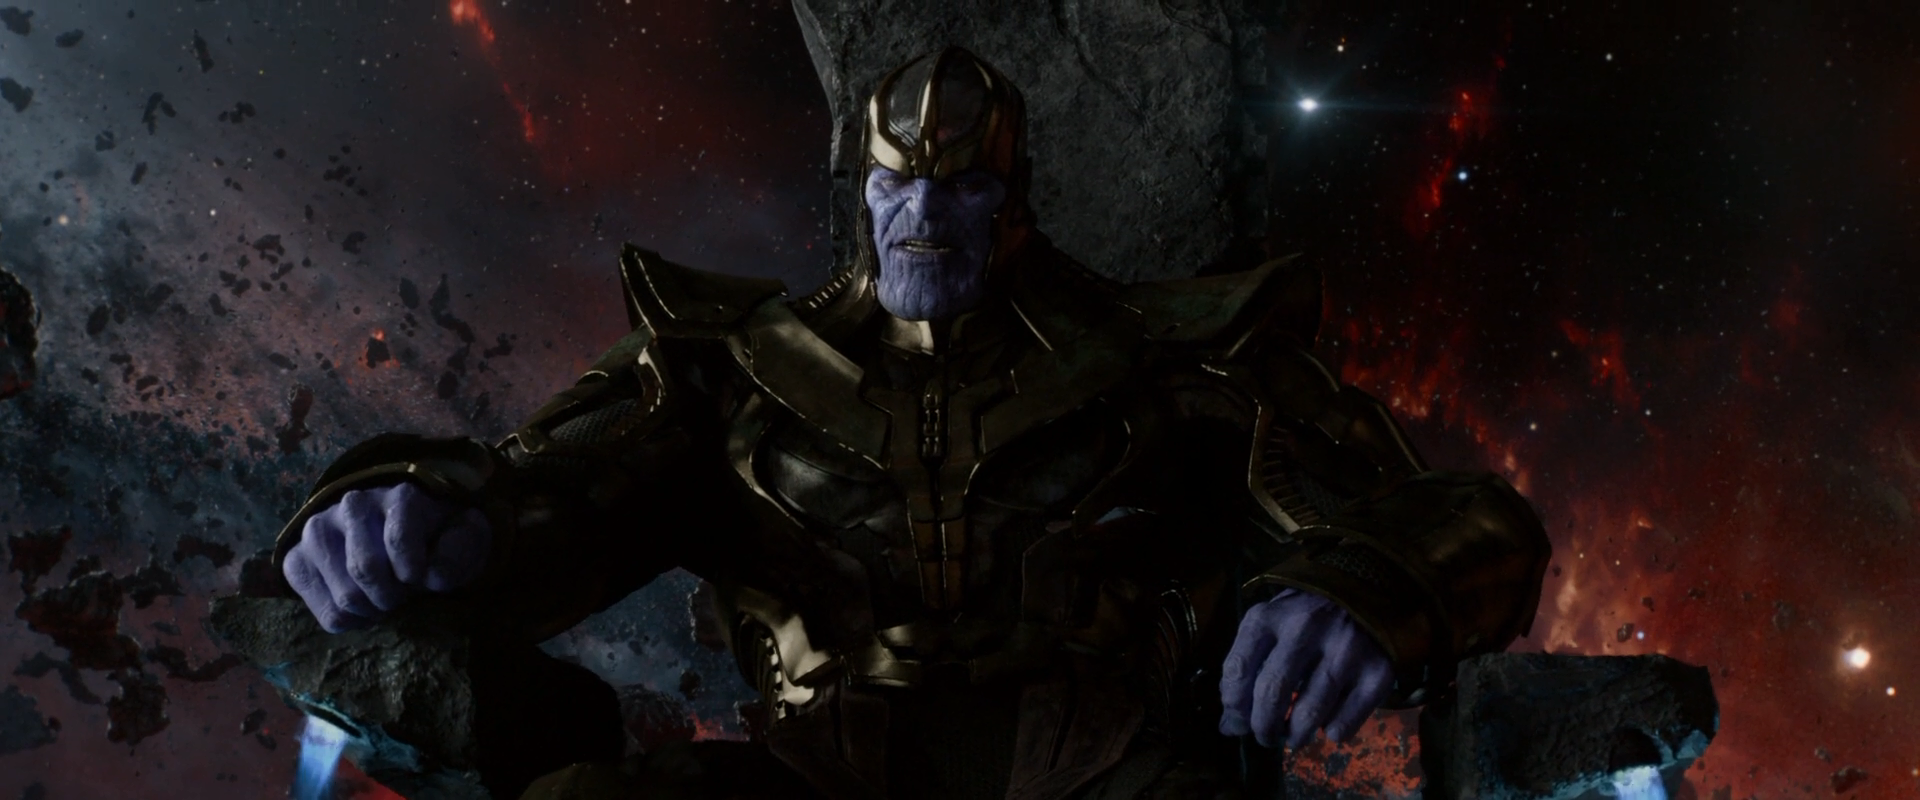 First Set-Picture of 'Avengers: Infinity War' Showcases Thanos